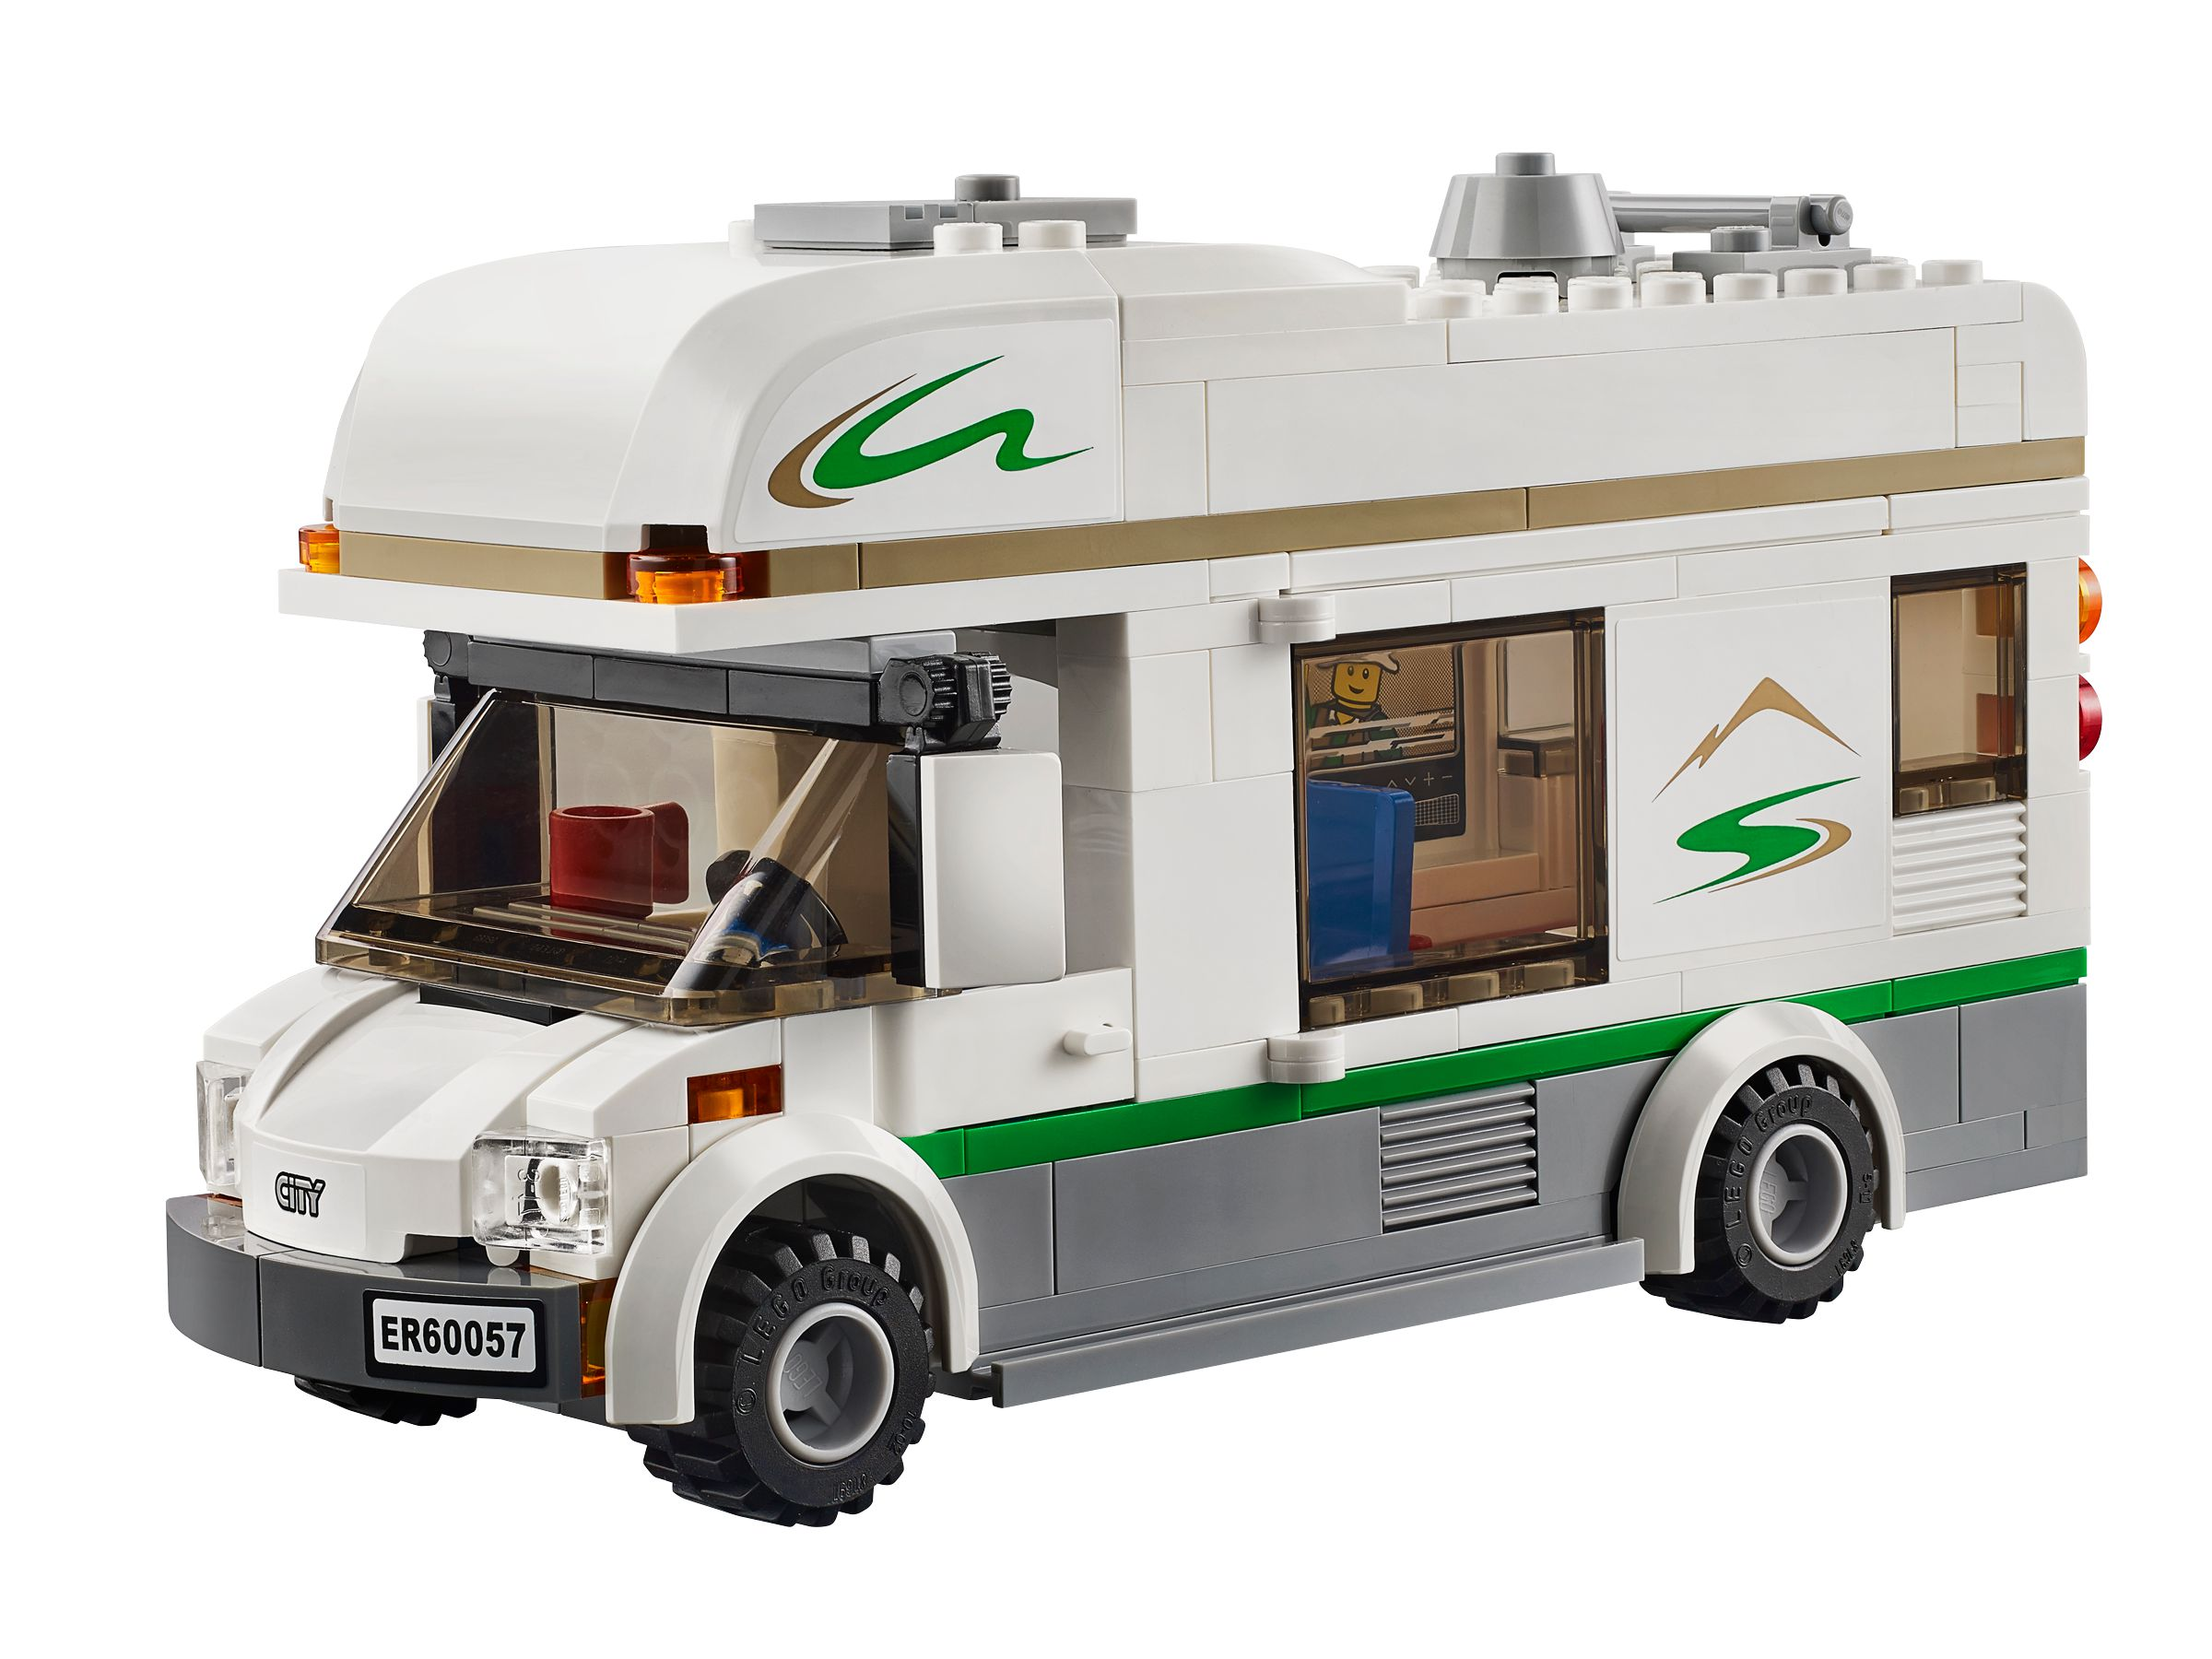 lego 60057 wohnmobil mit kanu city 2014 camper van brickmerge. Black Bedroom Furniture Sets. Home Design Ideas